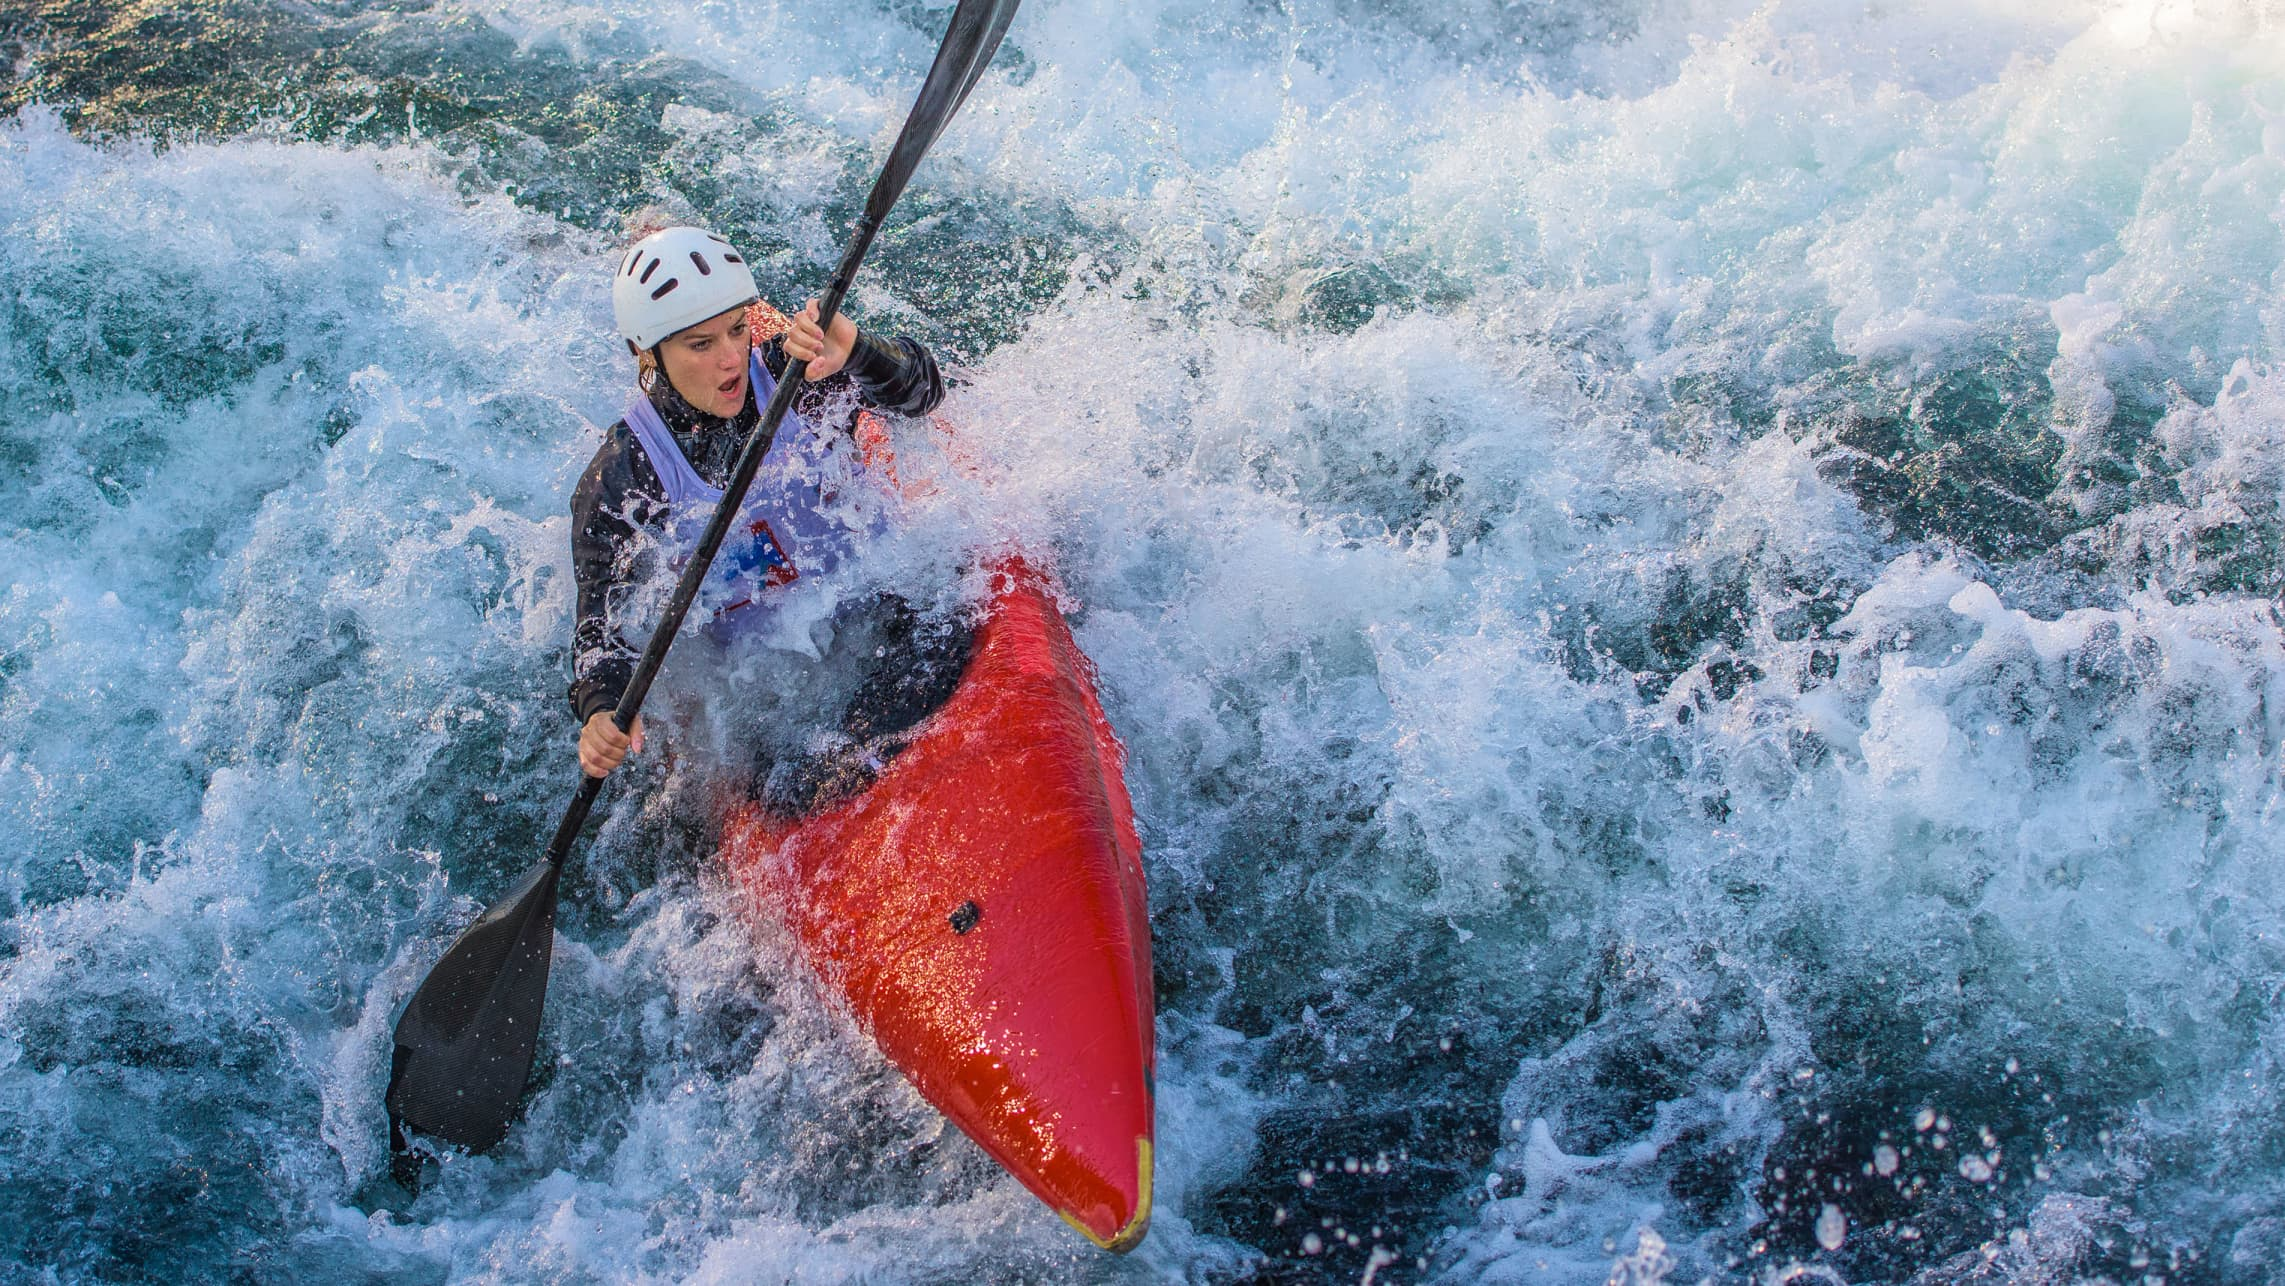 A kayaker braves white waves, hopefully avoiding an outdoor emergency or injury